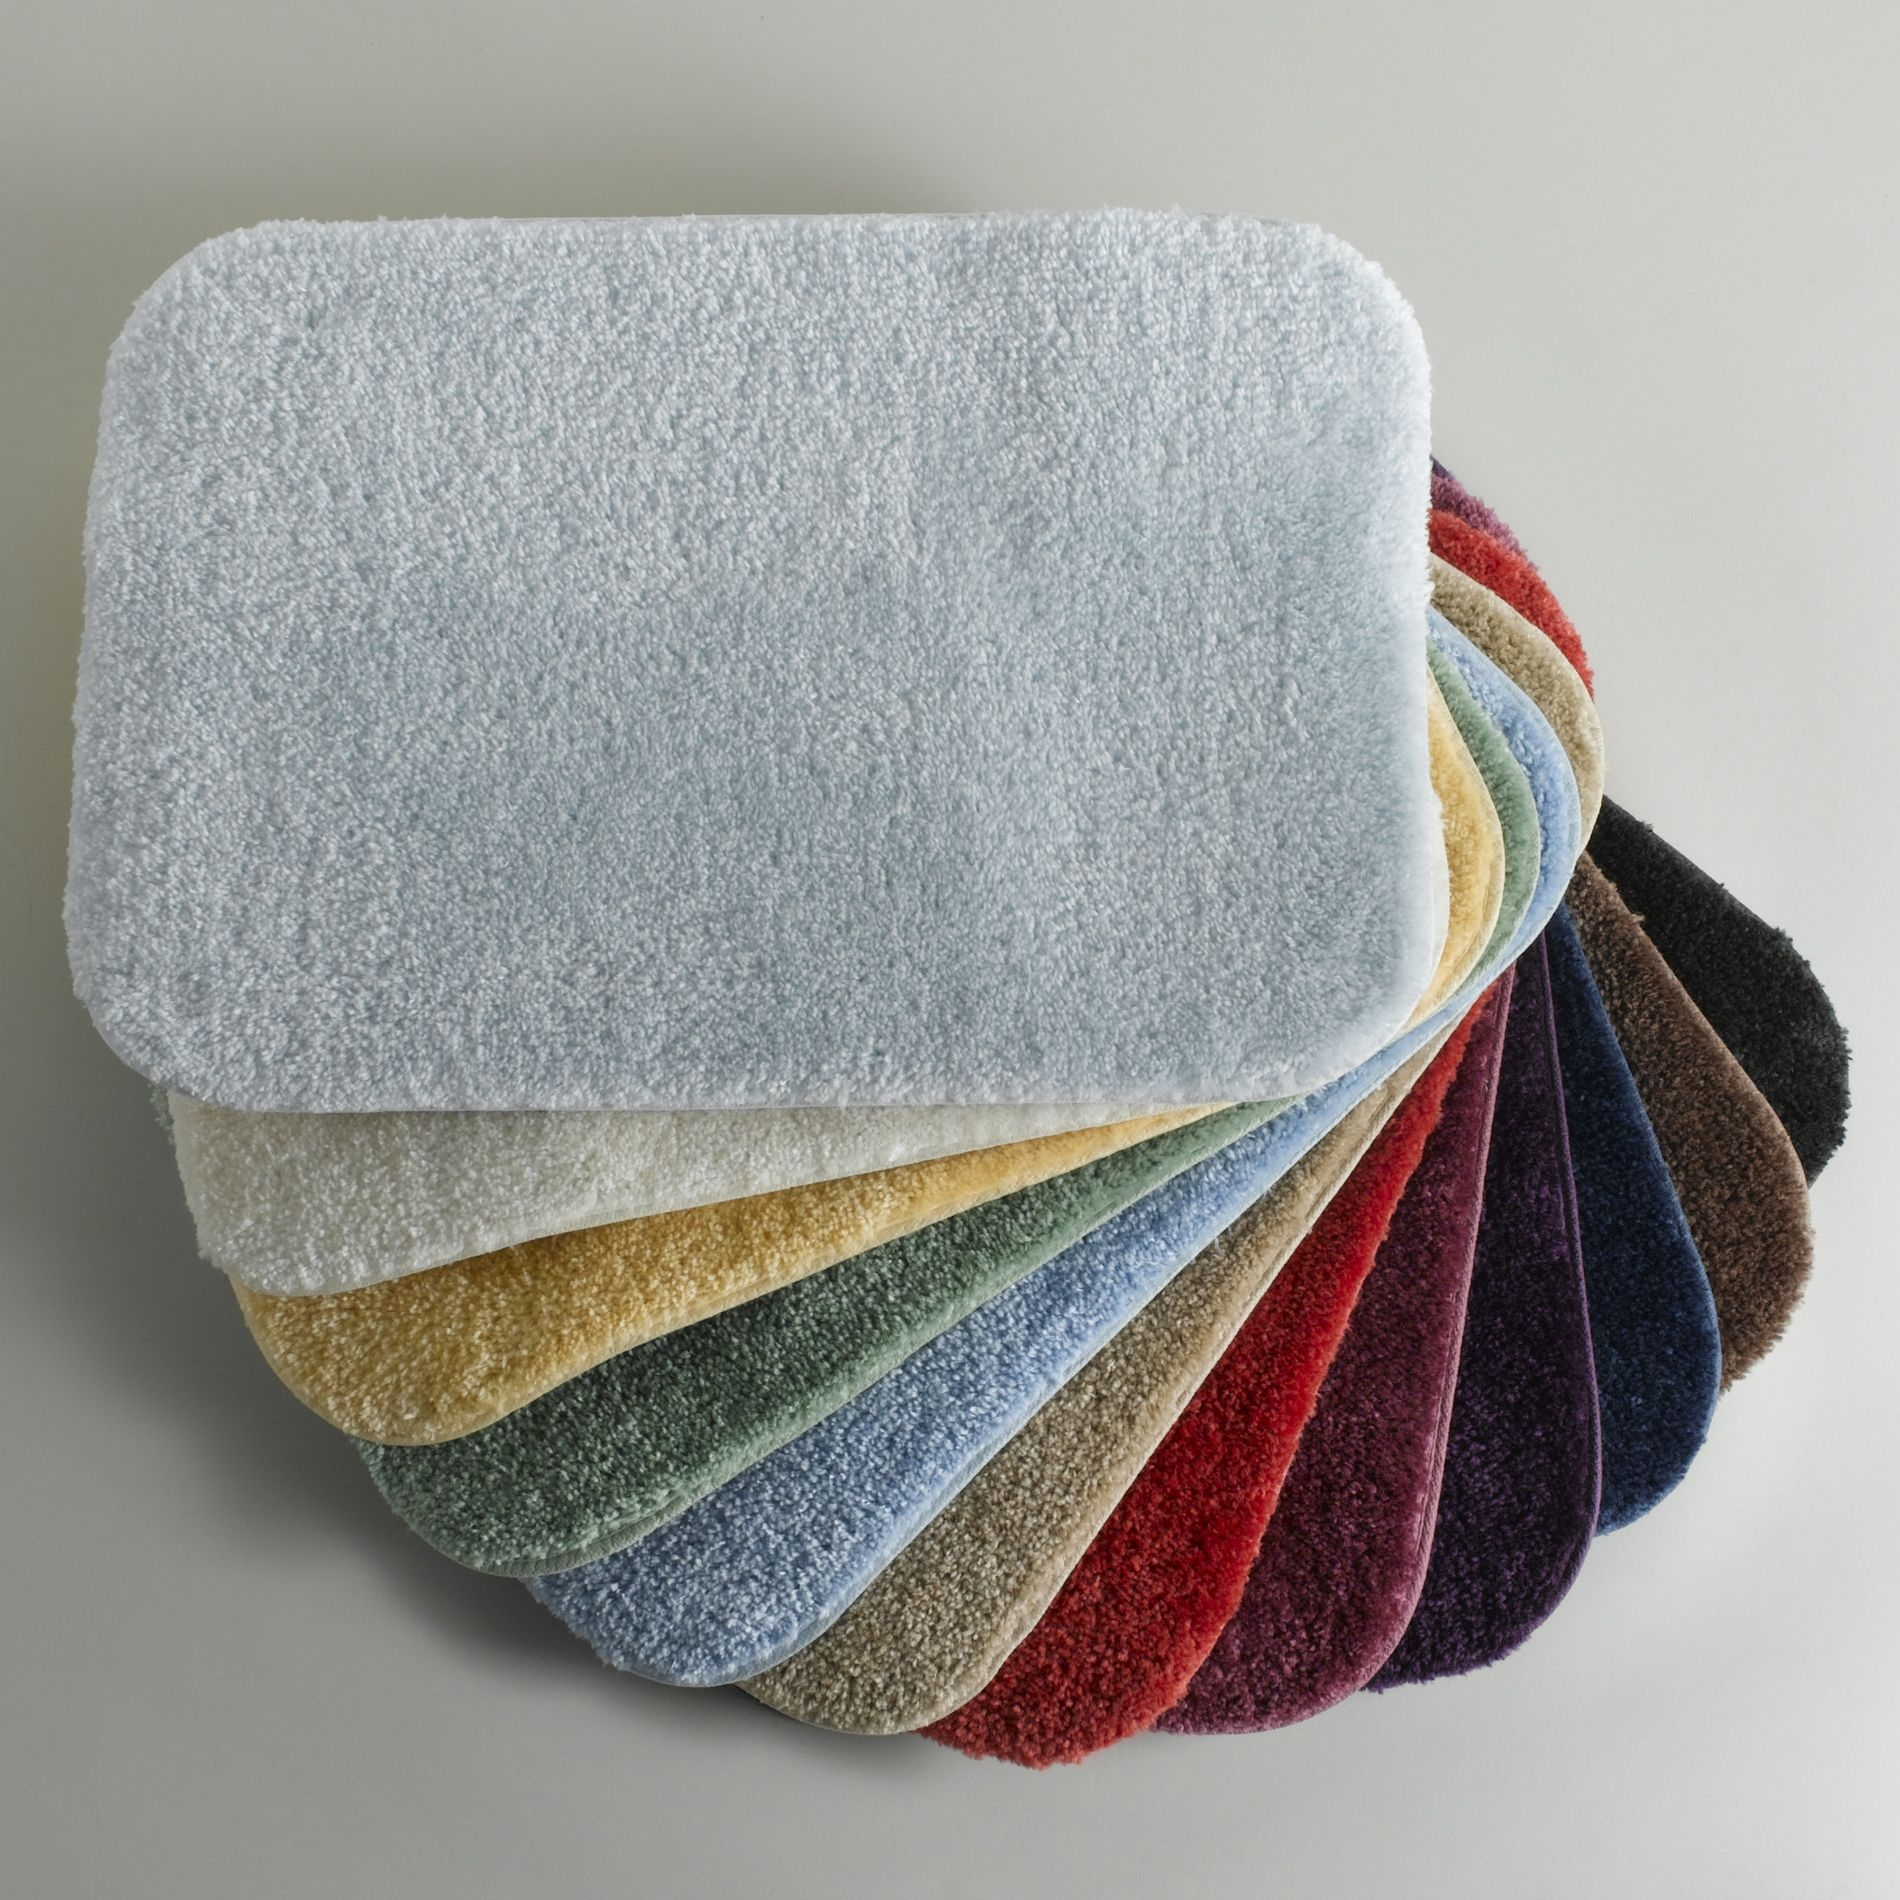 Permalink to Large Non Slip Bathroom Rugs